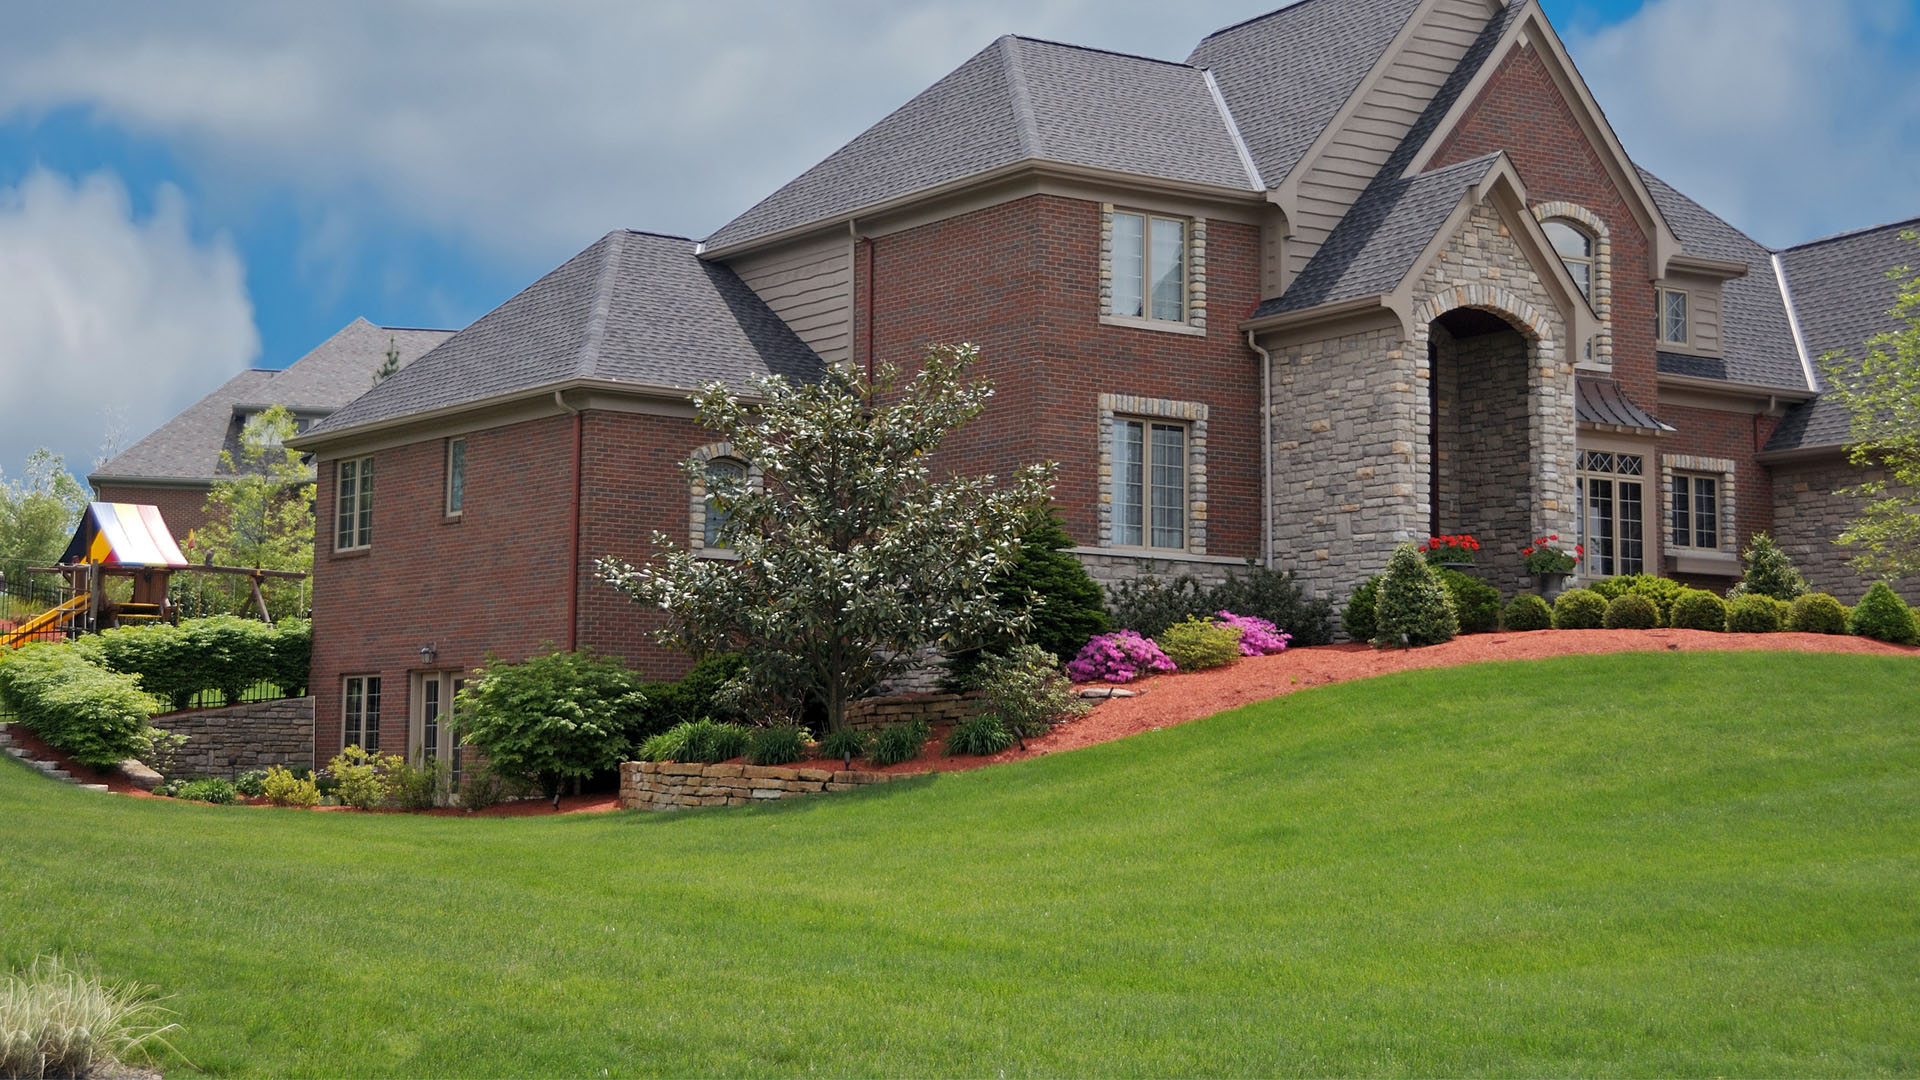 Recently mowed residential property in Noblesville, IN.